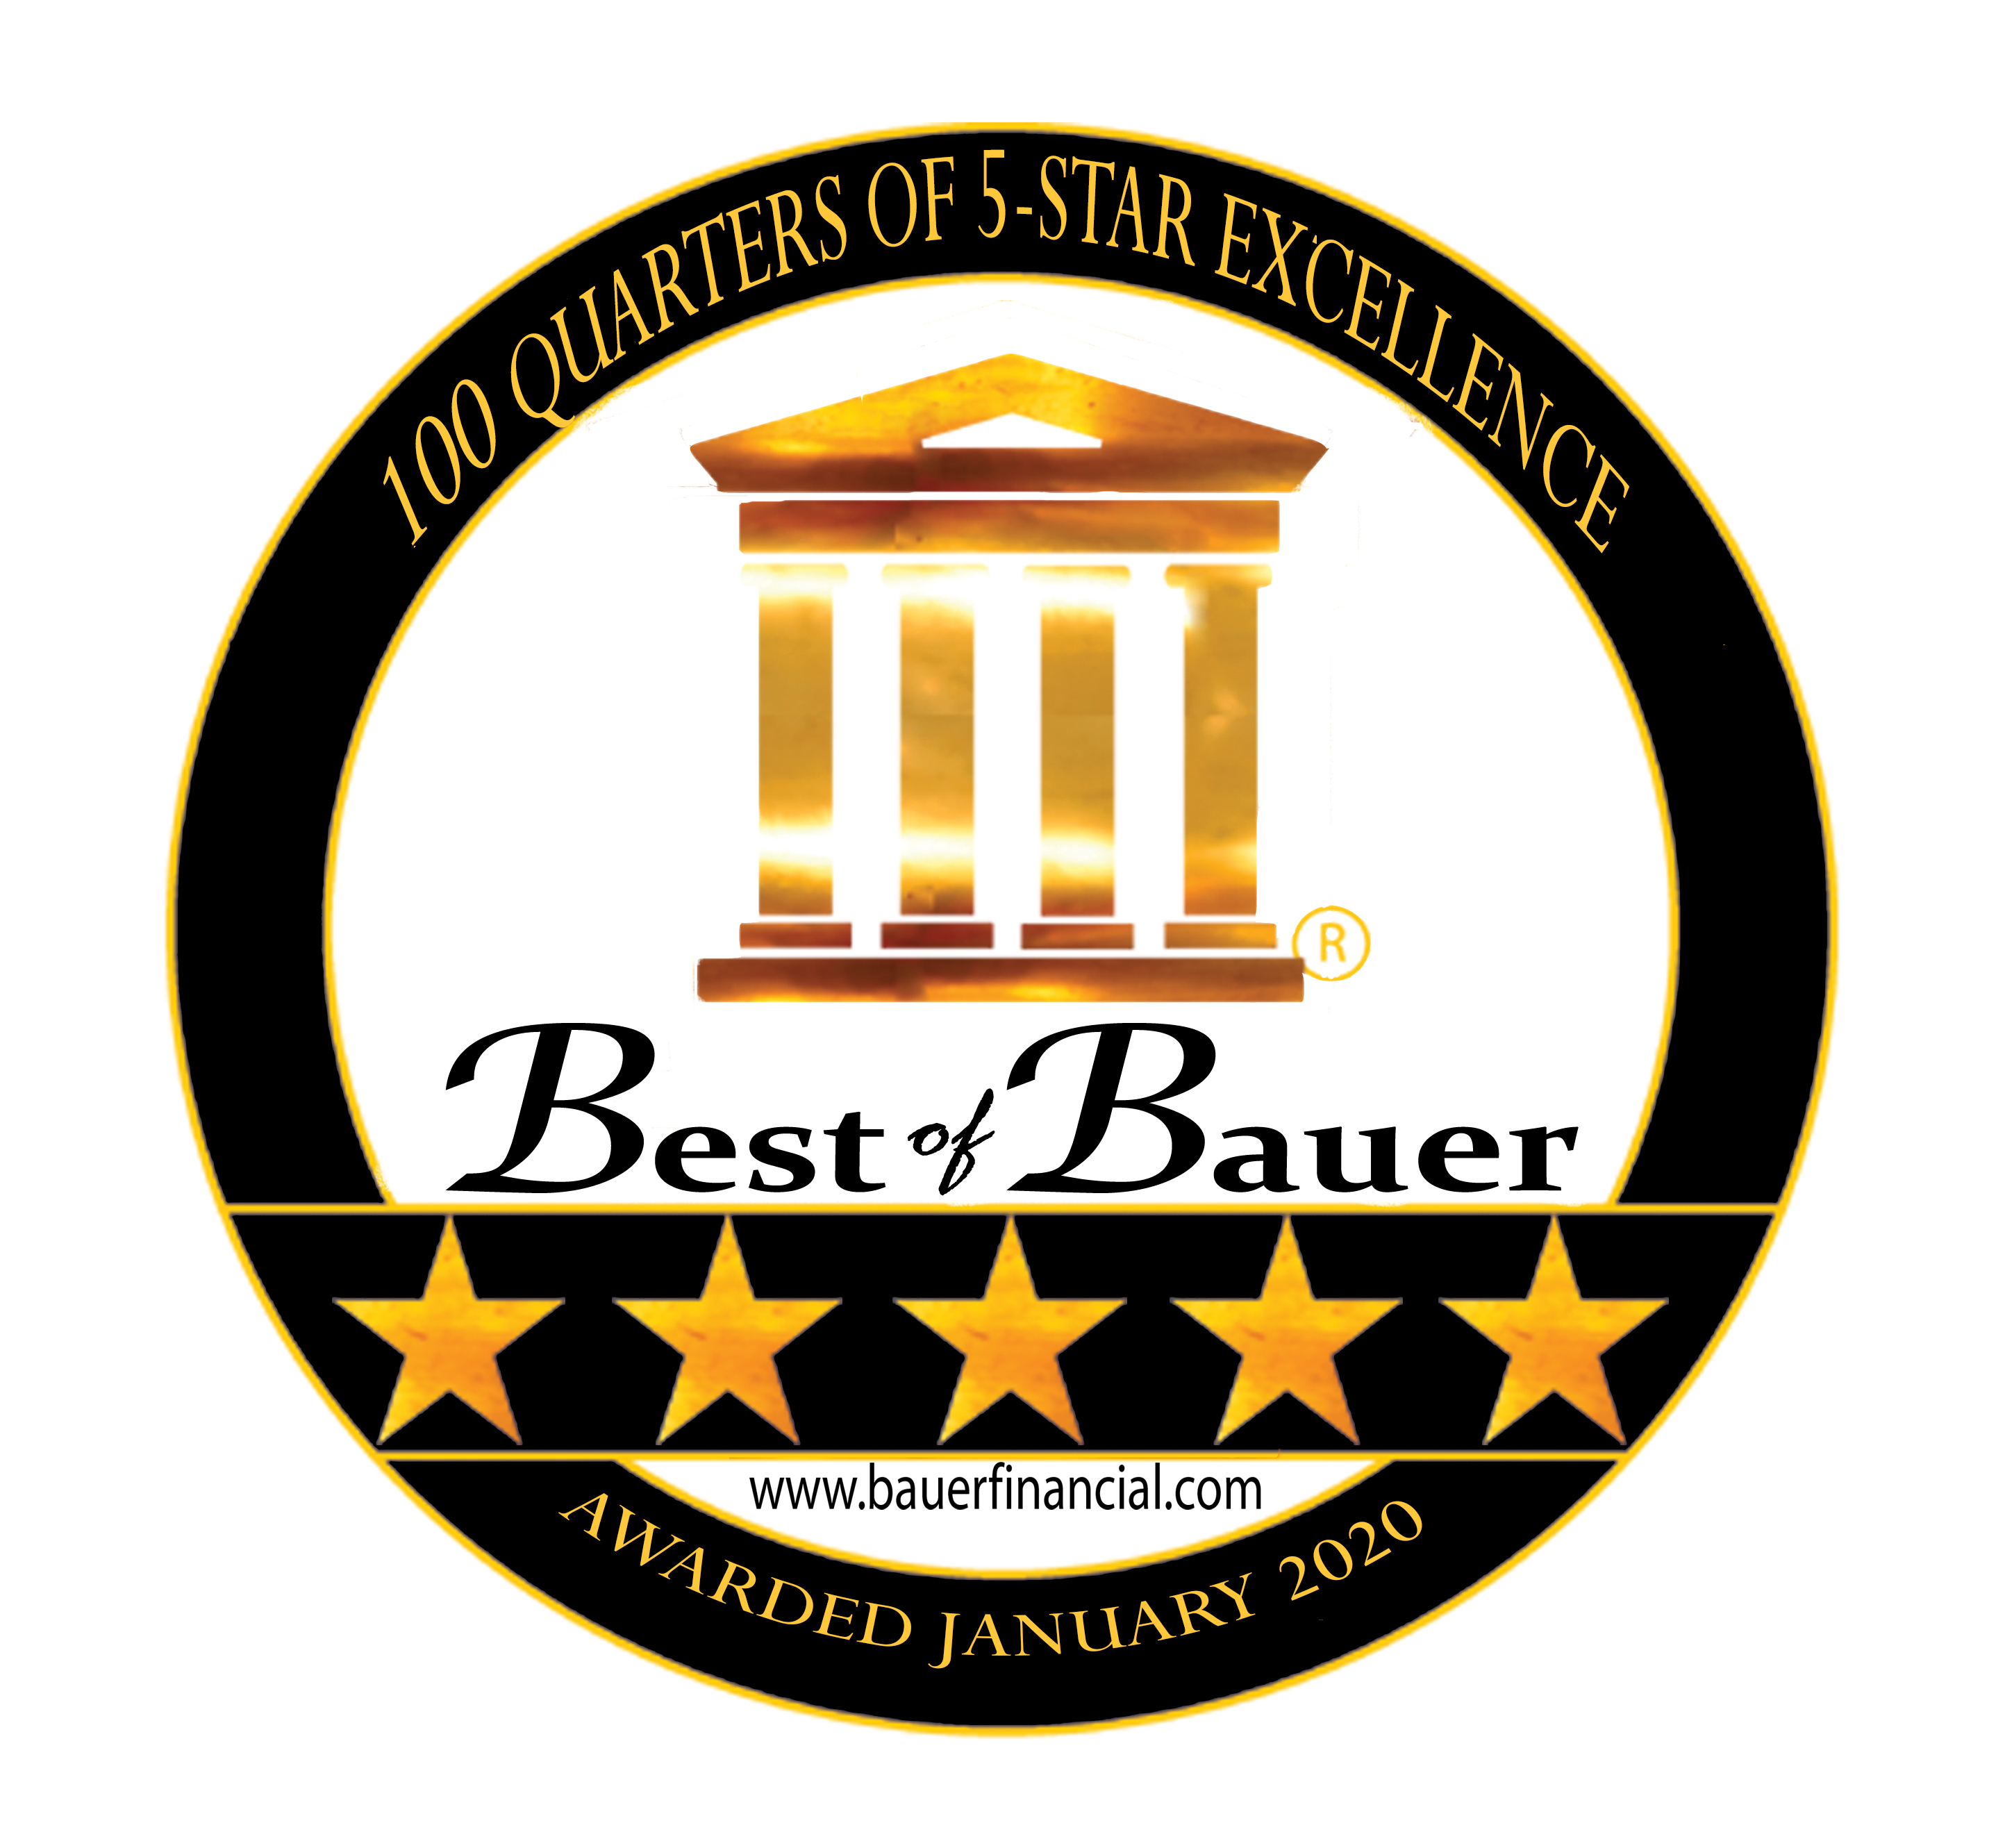 Best of Bauer 5-Star Rating